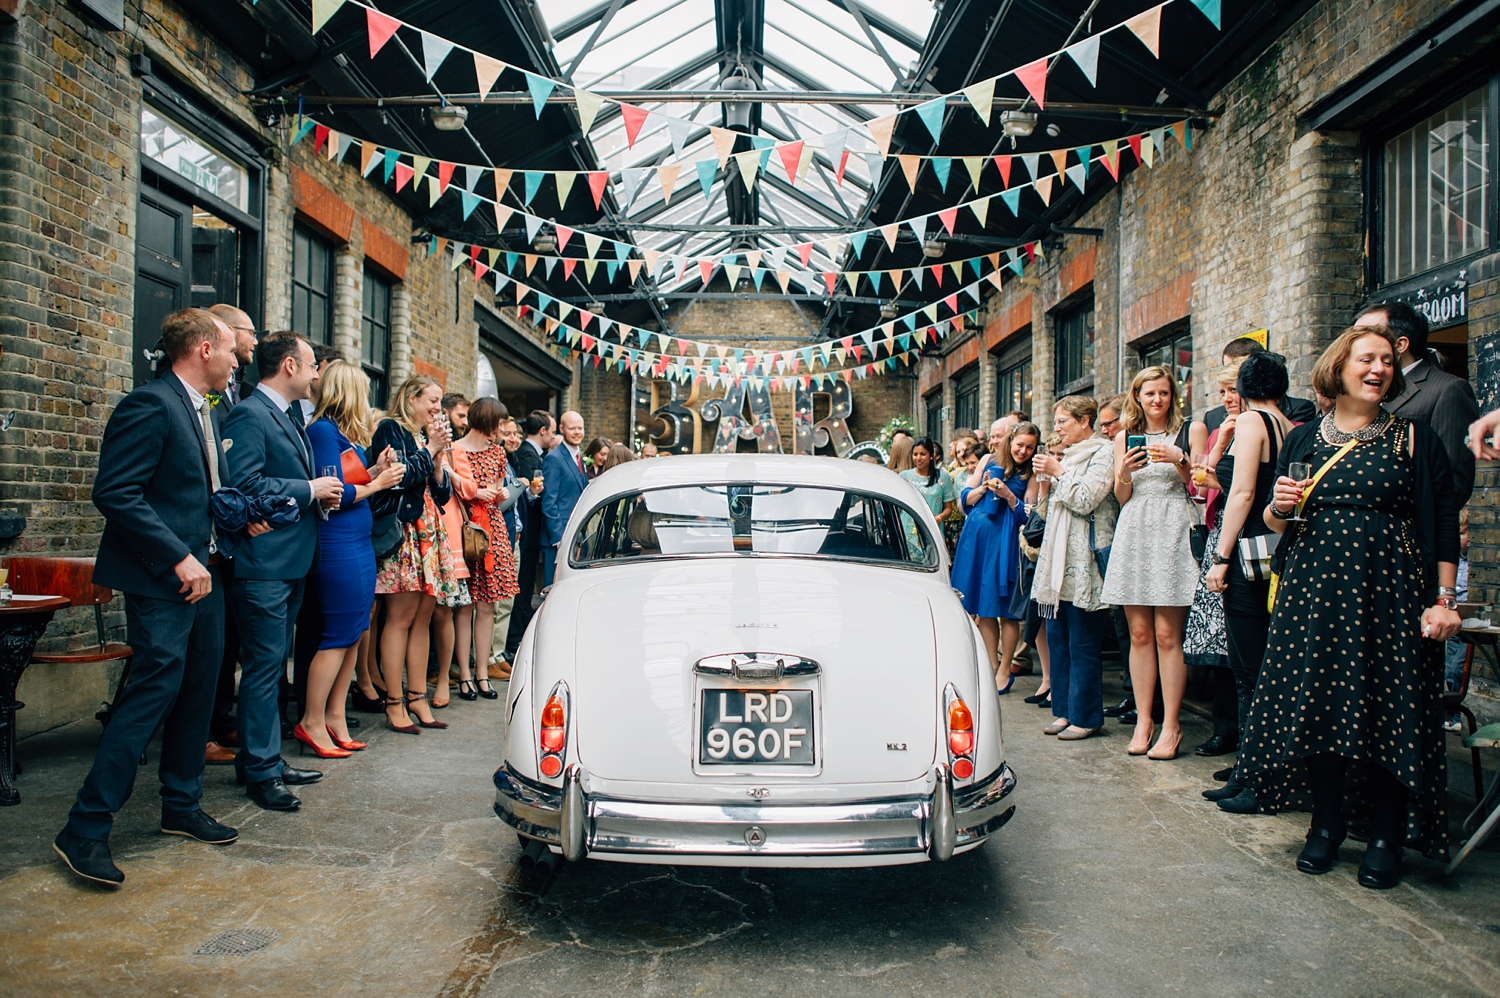 0102-lisa-devine-alternative-wedding-photography-london-hackney-dalston-london-photography-townhall-hotel.JPG